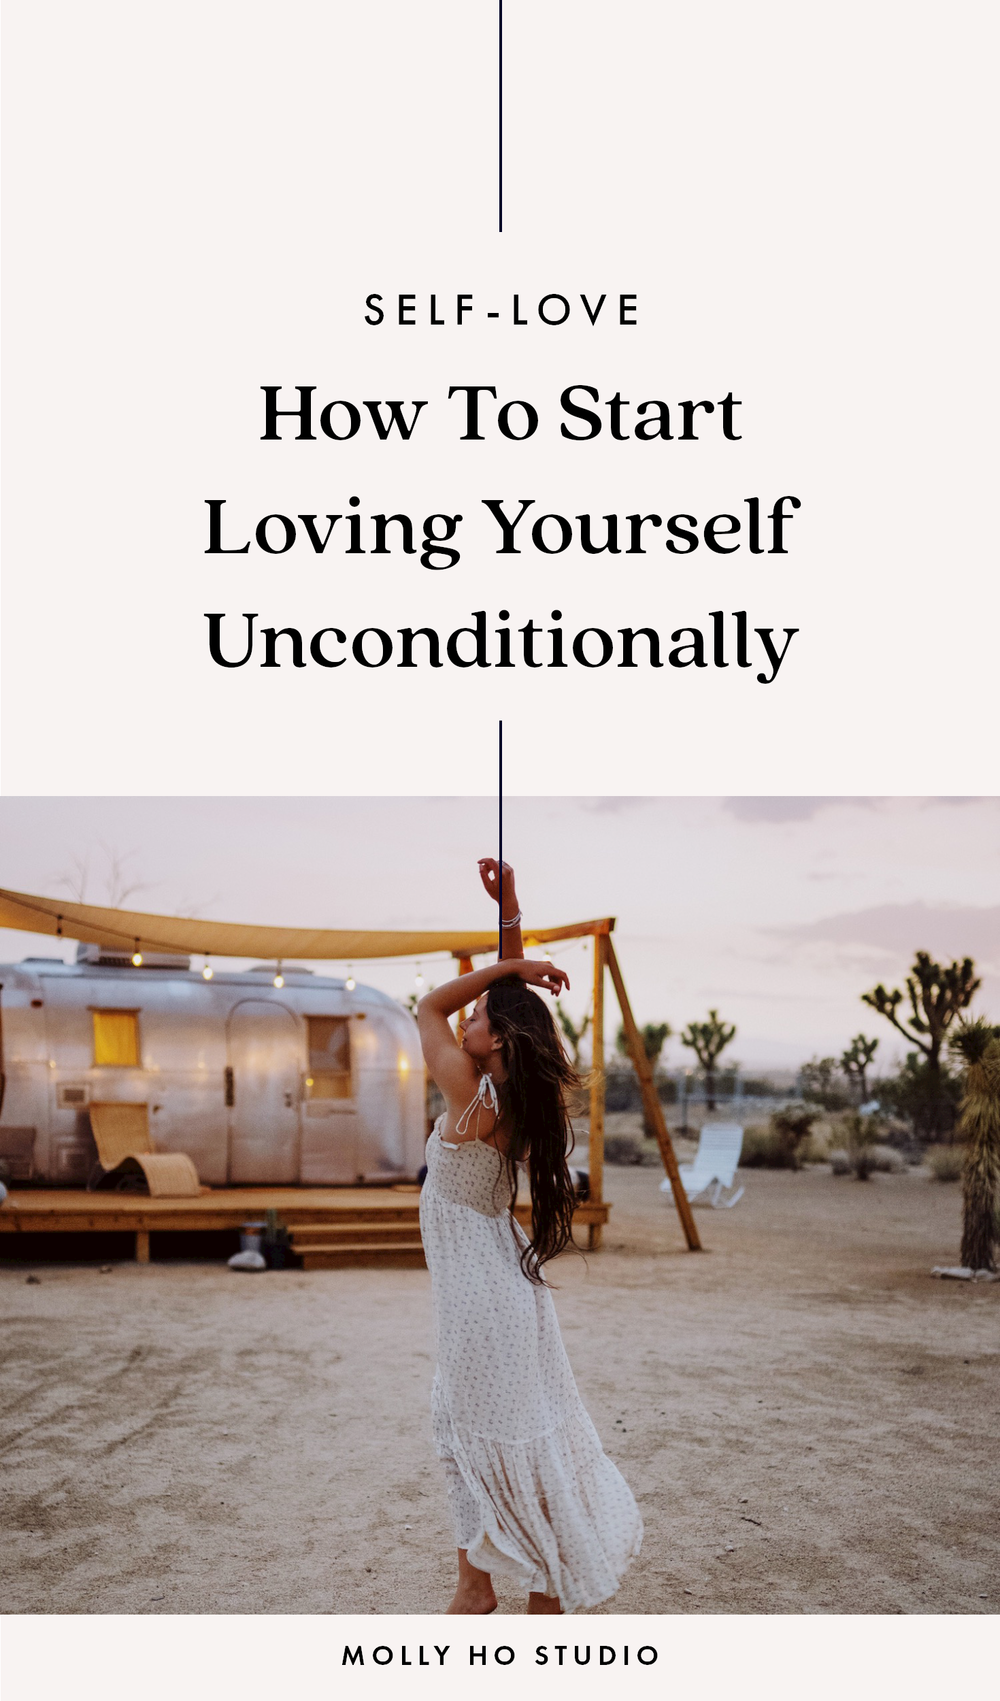 How To Start Loving Yourself More | Self-Love | Self-Care Tips | How To Put Yourself First | How To Be More Confident | How To Stop Hating Yourself | Self-Help Advice | Personal Growth | Living Your Best Life | Becoming Your Own Person | Finding Yourself | Self-Acceptance | Mental Health | Healthy Relationship With Yourself | Self-Esteem | Molly Ho Studio